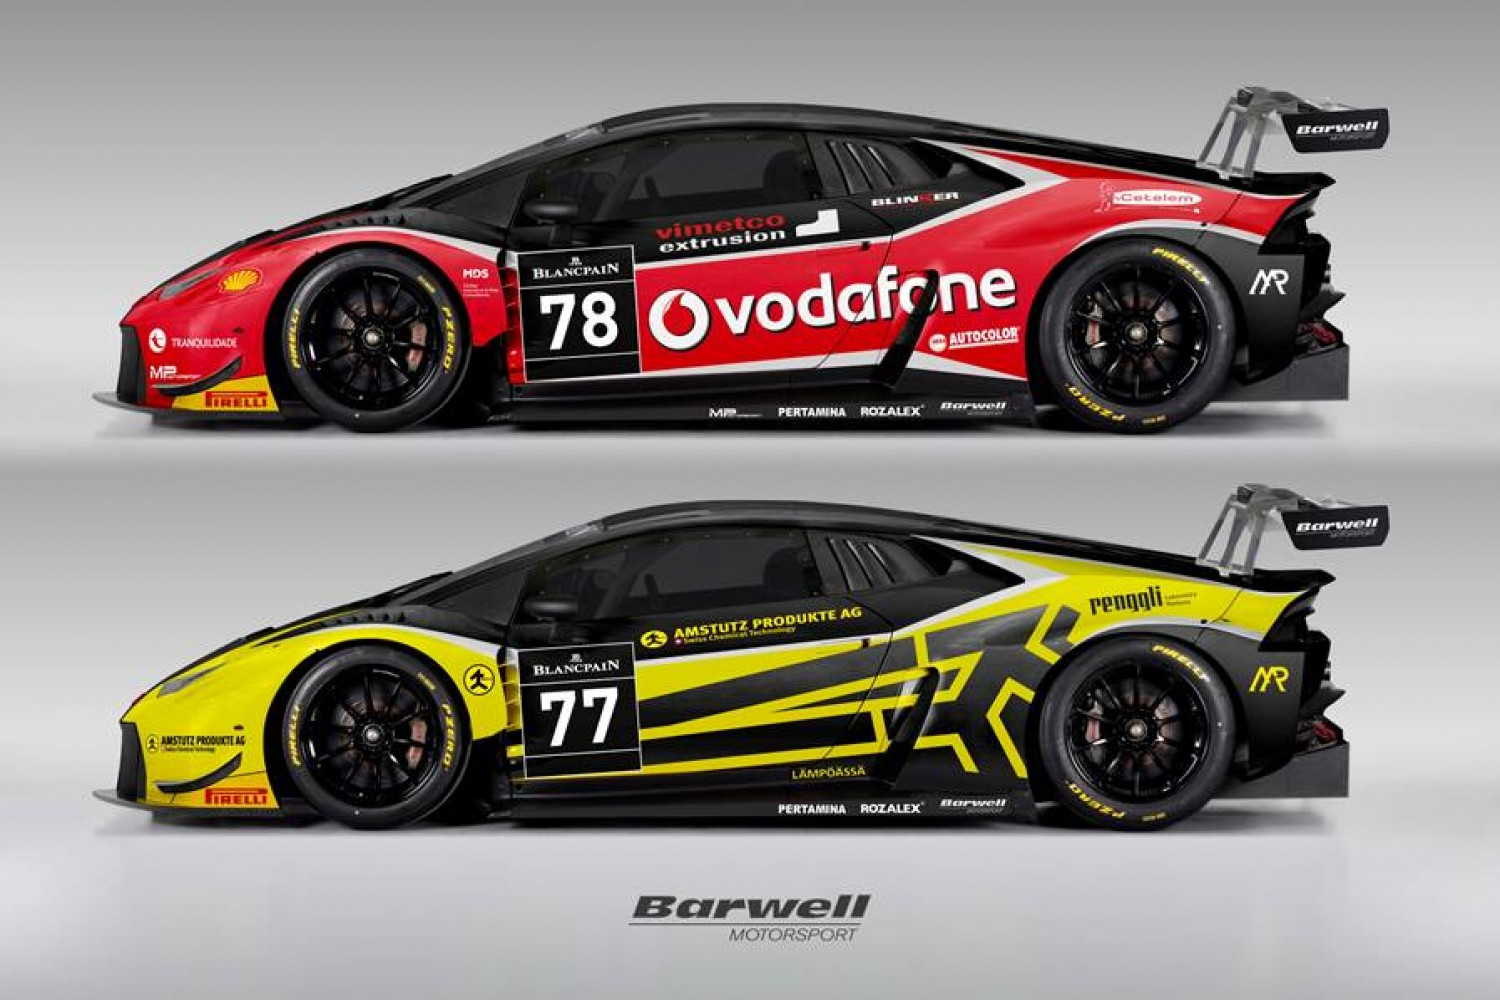 Barwell Motorsport confirms two-car squad for Blancpain GT Series Endurance Cup assault